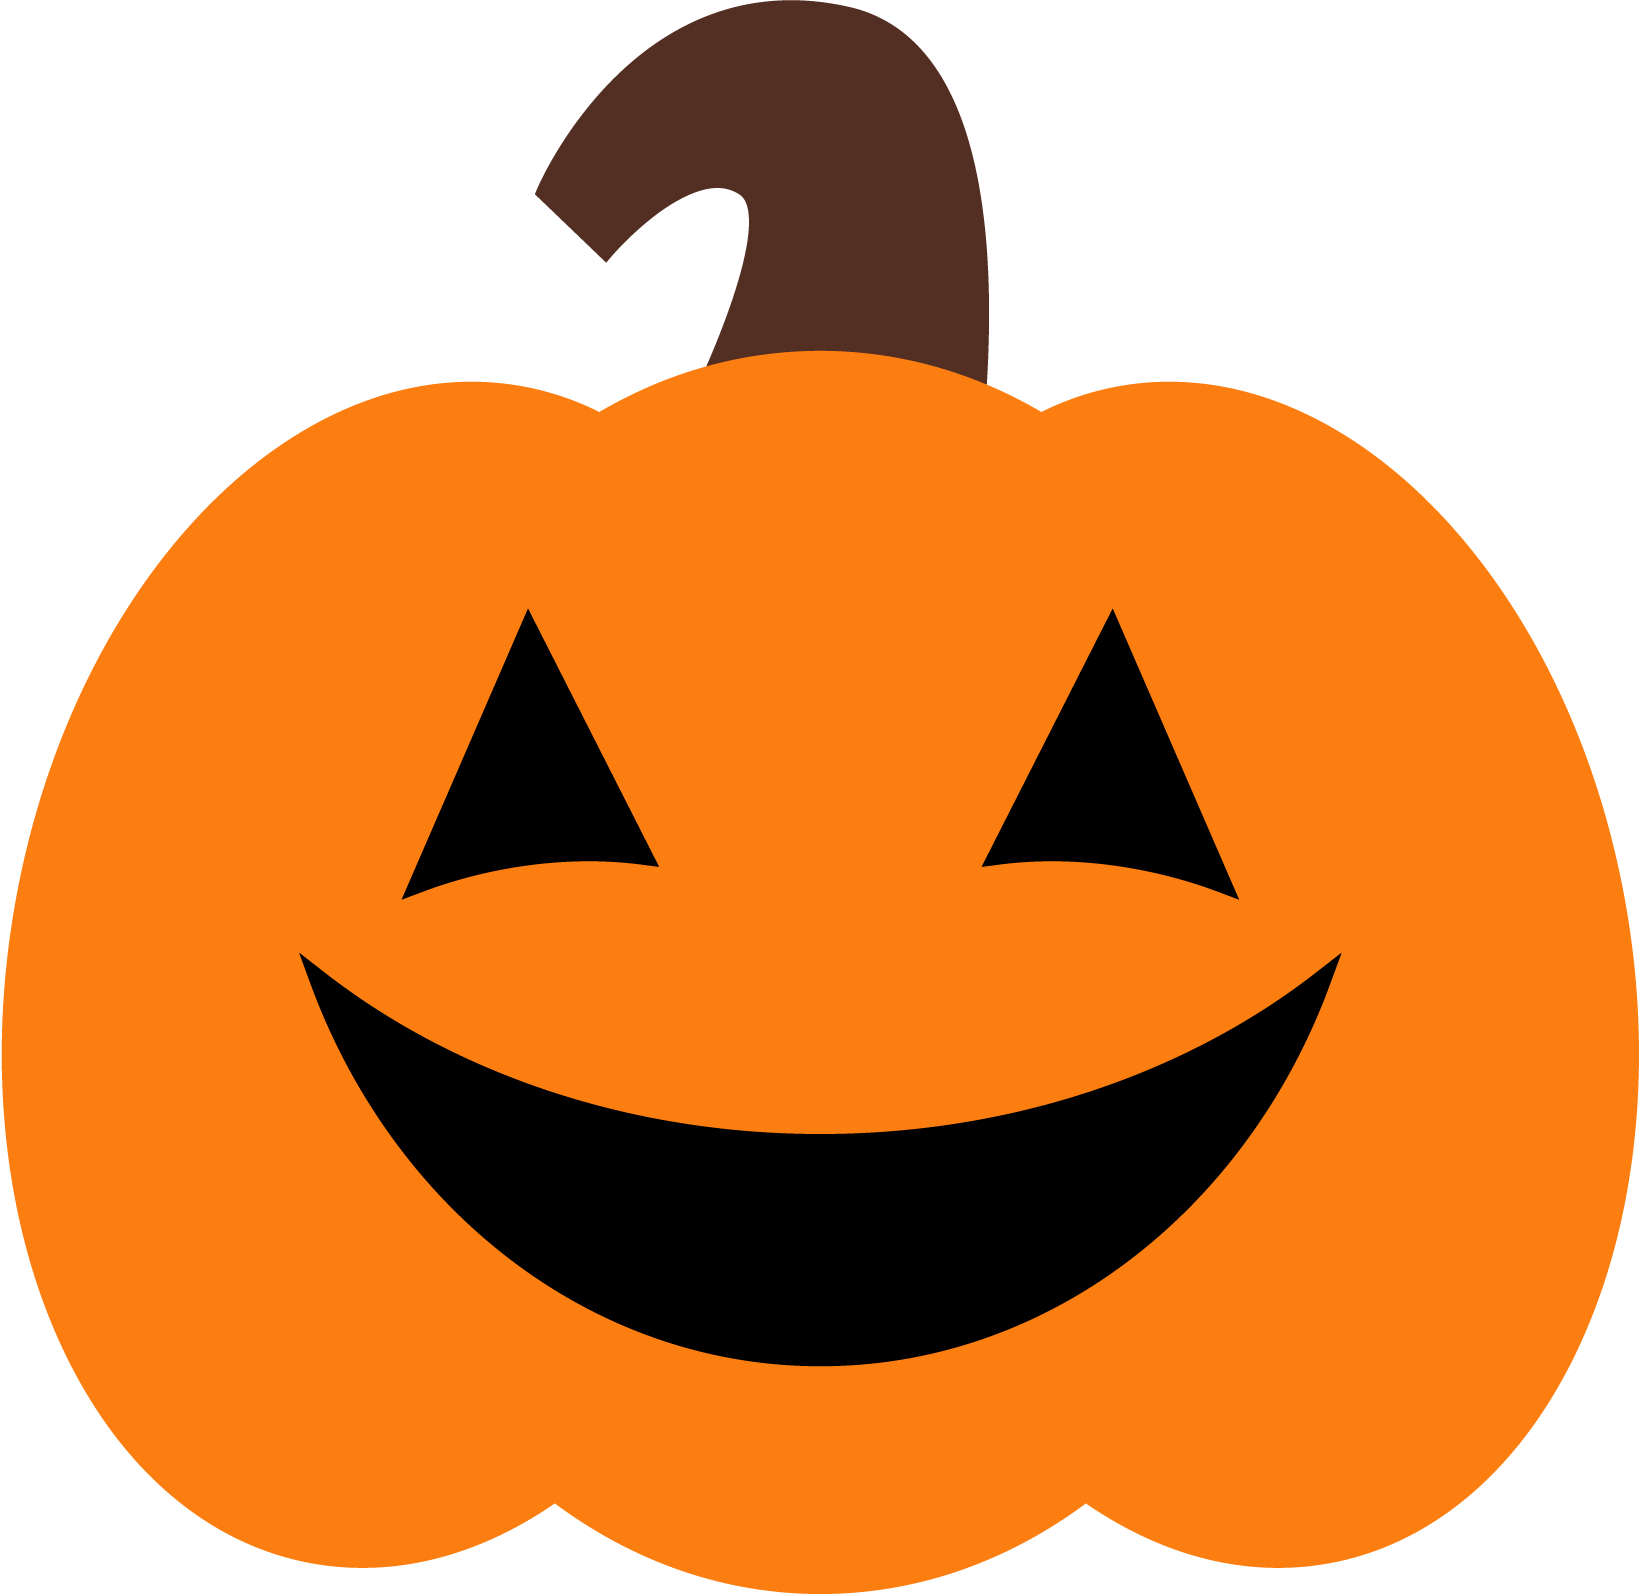 Images For Cute Pumpkin Clipart